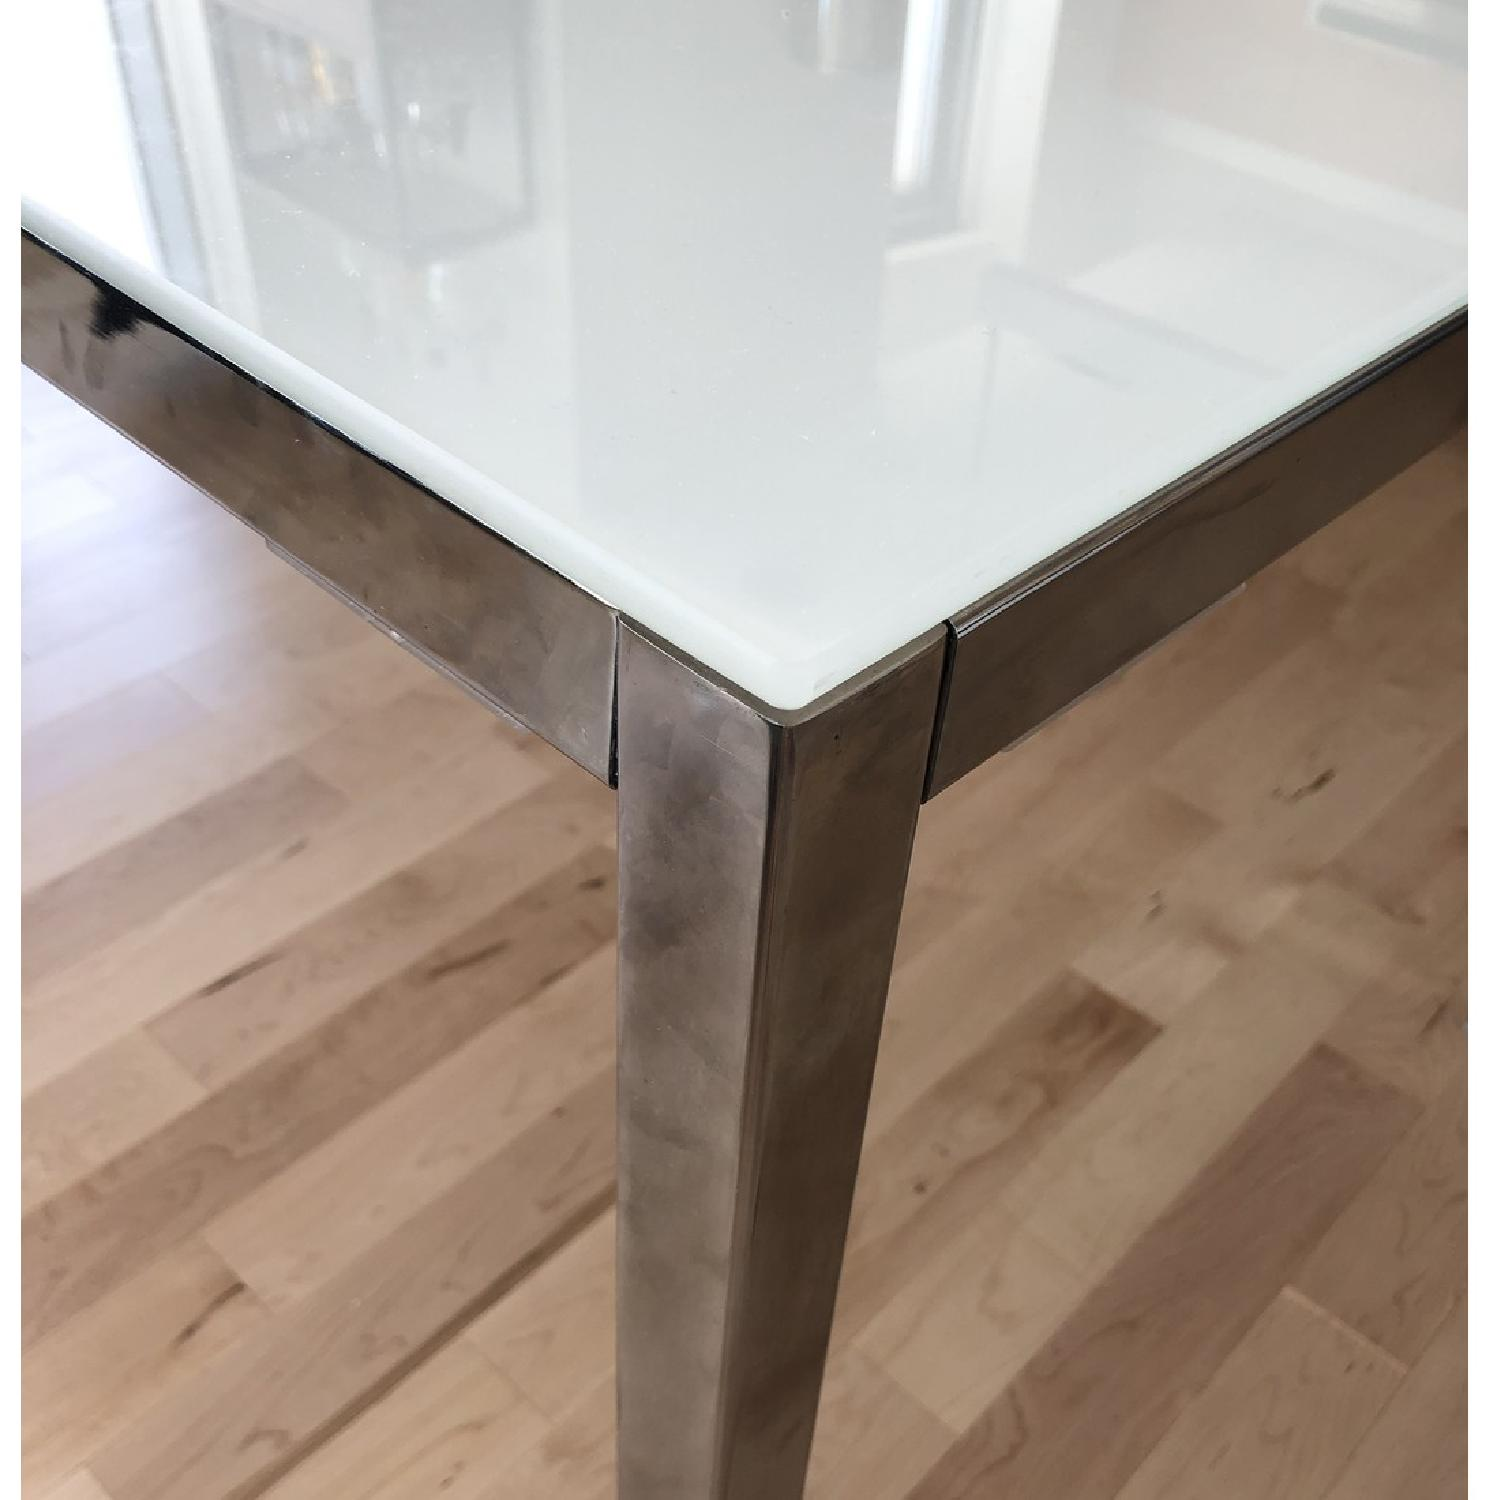 Ikea Torsby White Glass Top Chrome Plated Dining Table-1